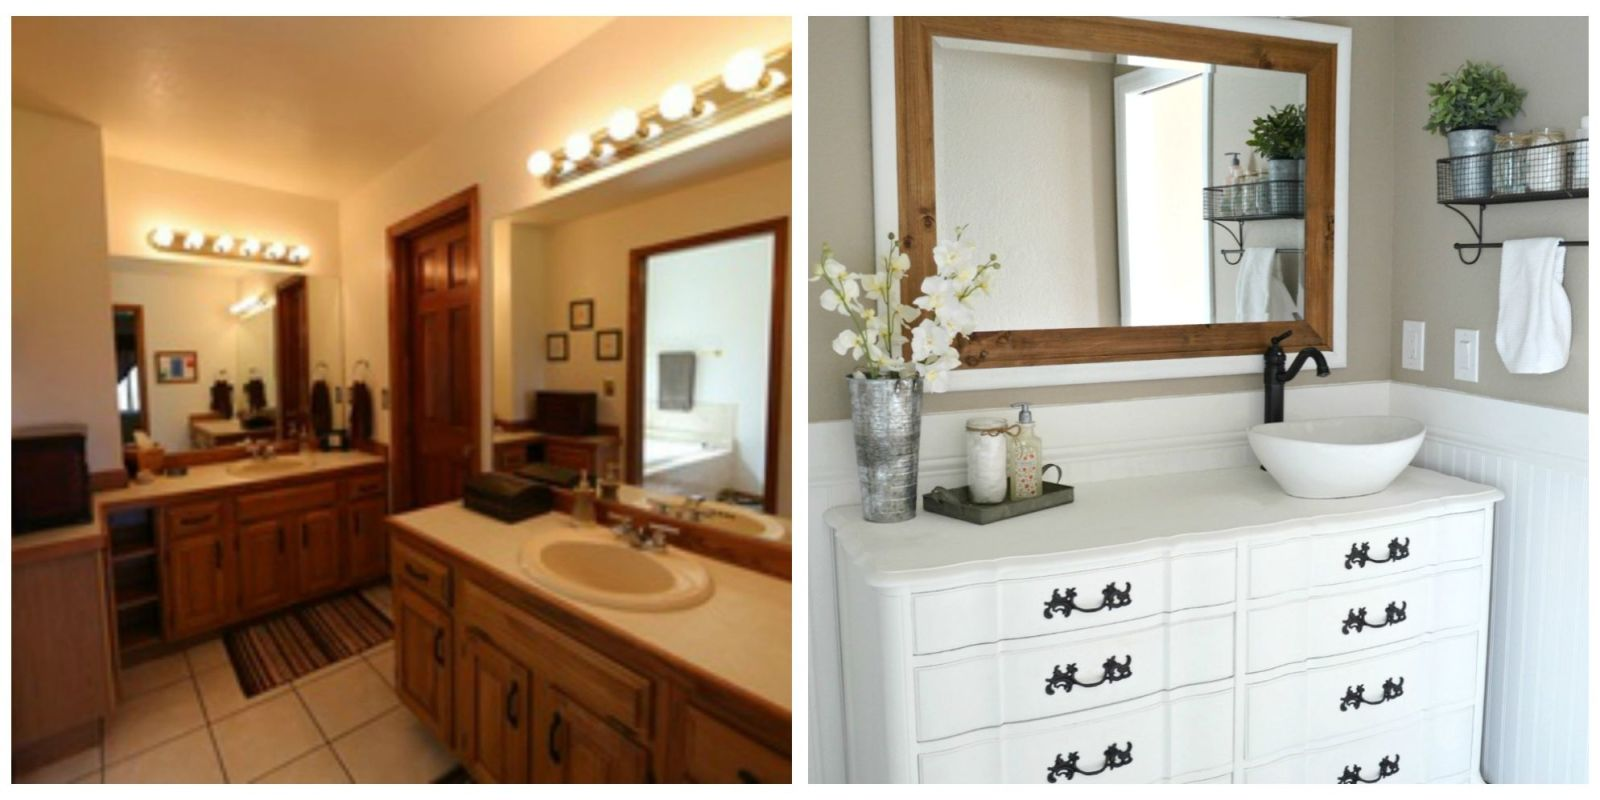 5 Brilliant Design Ideas From This Elegant Farmhouse Bathroom Renovation Ma